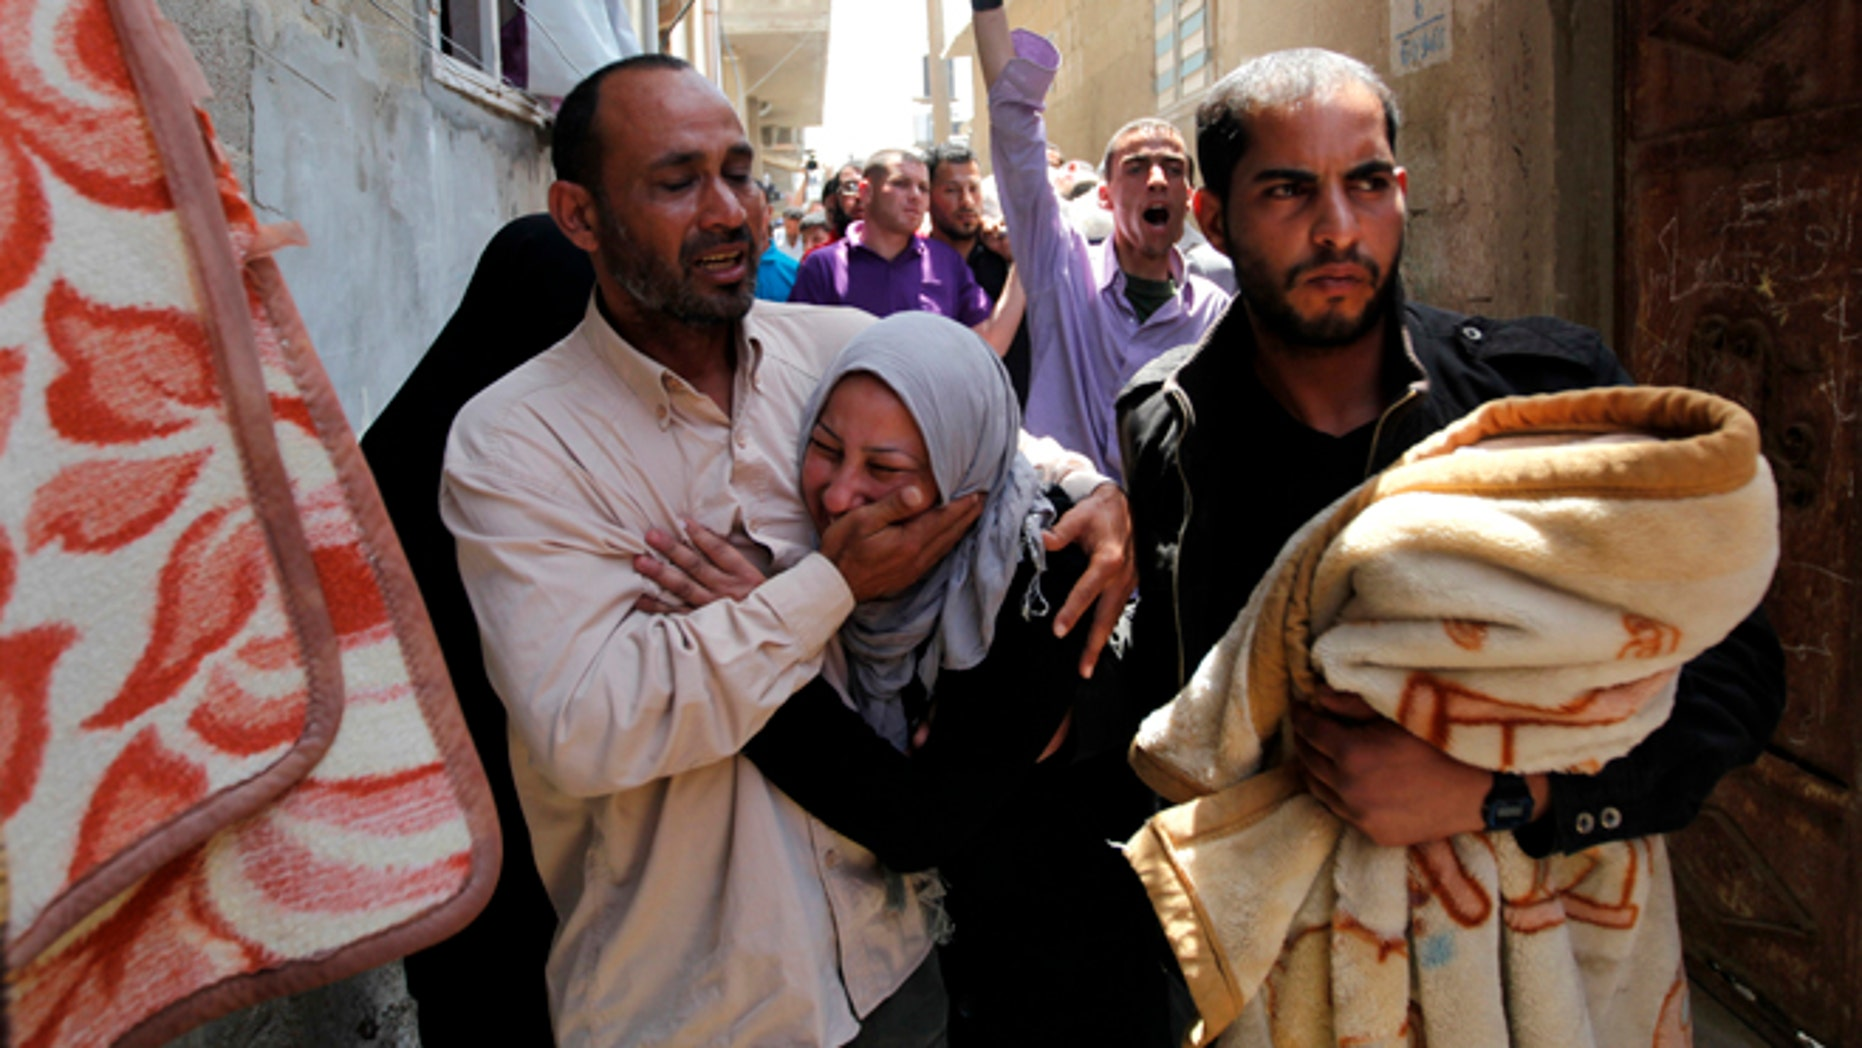 April 30, 2013: Palestinian relatives of Haitham Mishal, 29, react during his funeral in the Shati Refugee Camp in Gaza City. An Israeli aircraft attacked a motorcyclist in Gaza on Tuesday, killing the rider and wounding two other people in the first deadly airstrike in the Palestinian territory since a truce was reached with Palestinian militants last November. The Israeli military said the airstrike killed Haitham Mishal, whom it identified as a militant involved in the April 17 rocket attack on the southern Israeli resort town of Eilat.